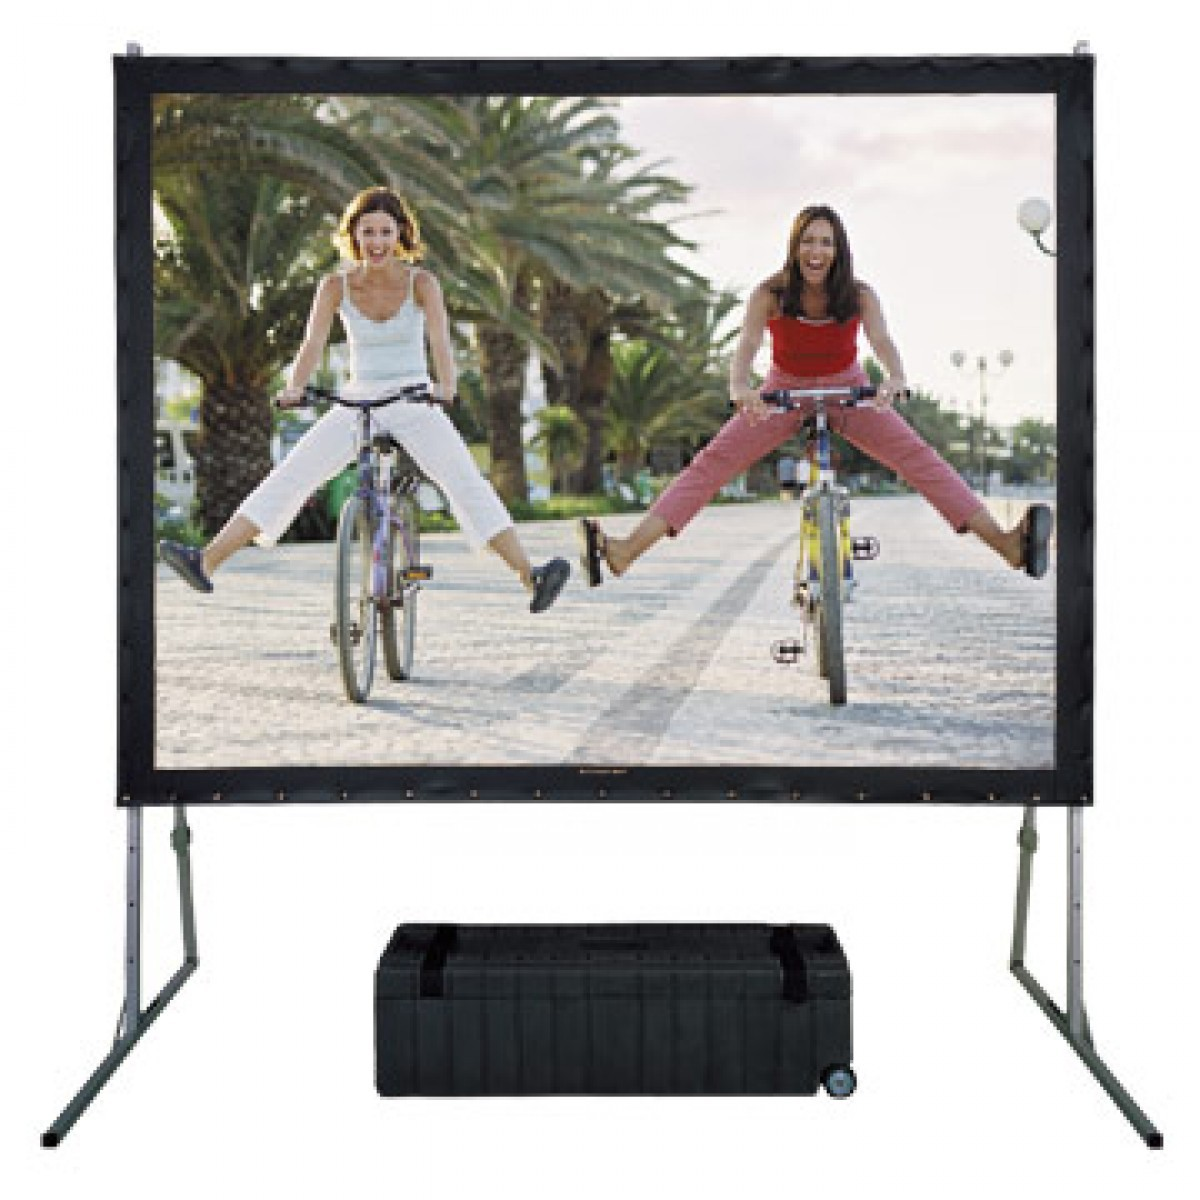 Grandview, 180, (16:9), GV, Fast, Fold, frame+case+front, fab, Image, size, 39,